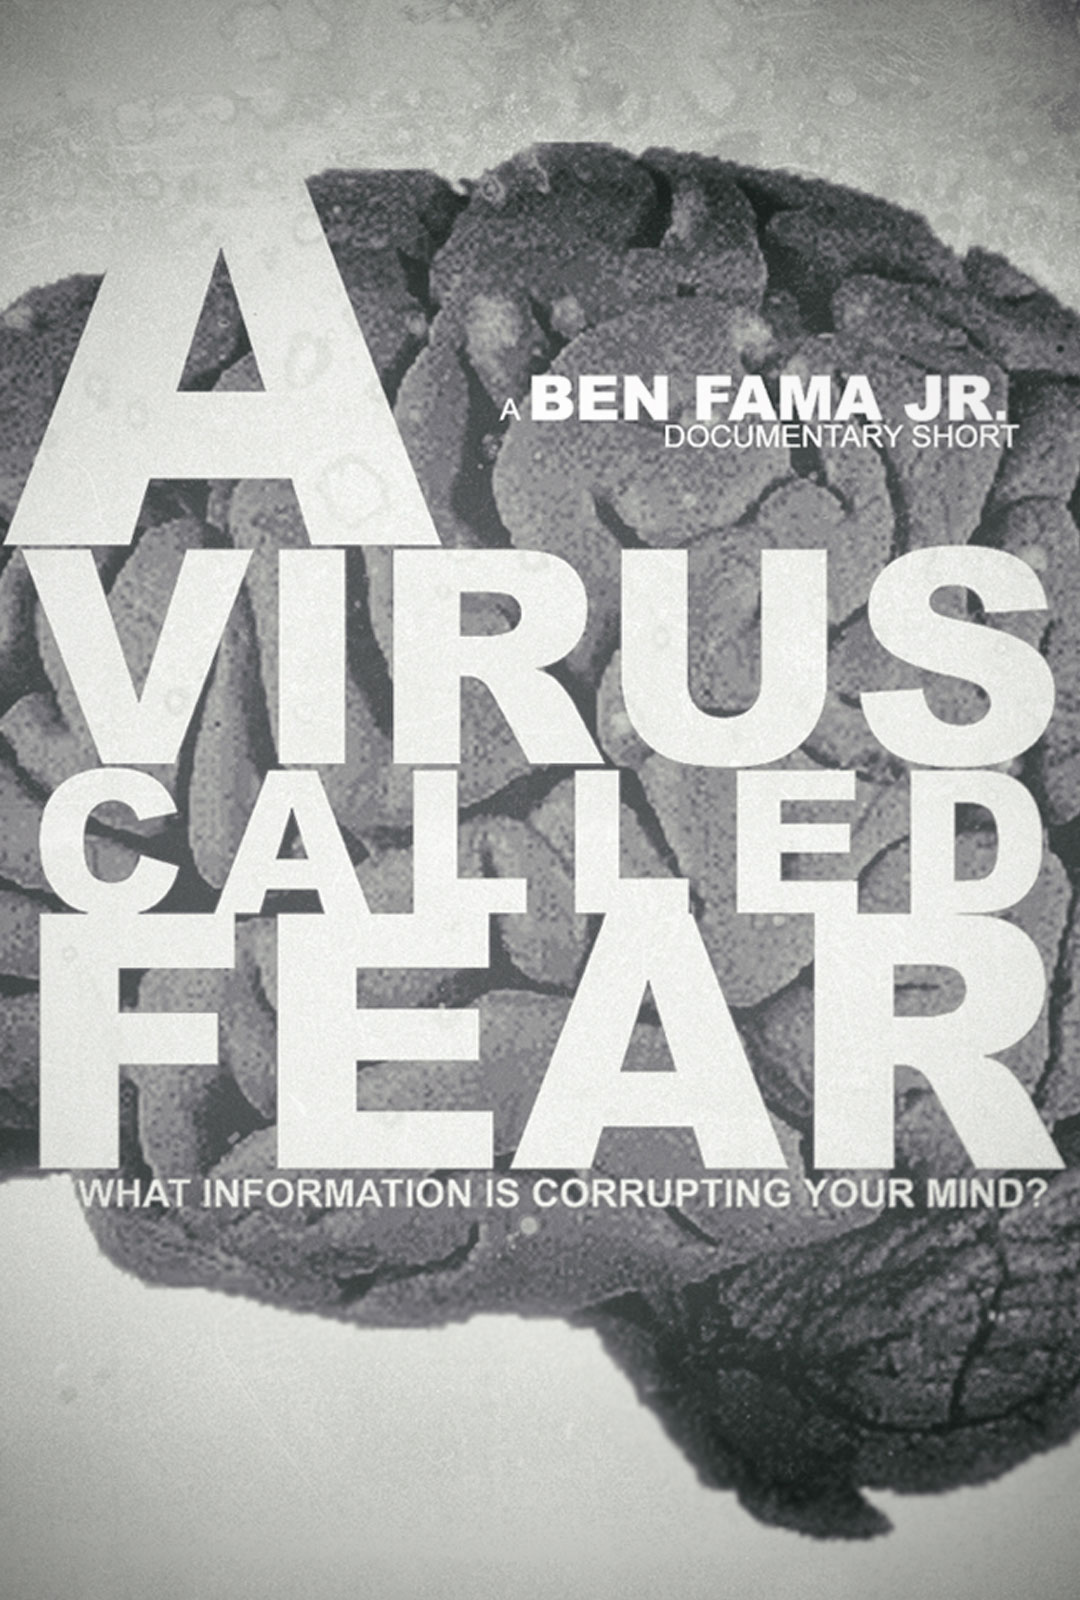 A Virus Called Fear - Directed by Ben Fama Jr.Produced by Mesa FamaDocumentary; 20minVery few people understand the programming of fear, and why it distorts our perceptions. While fear is a program used for our survival, fear also creates irrational beliefs that cause larger systems of fear like politics, religion and the media.